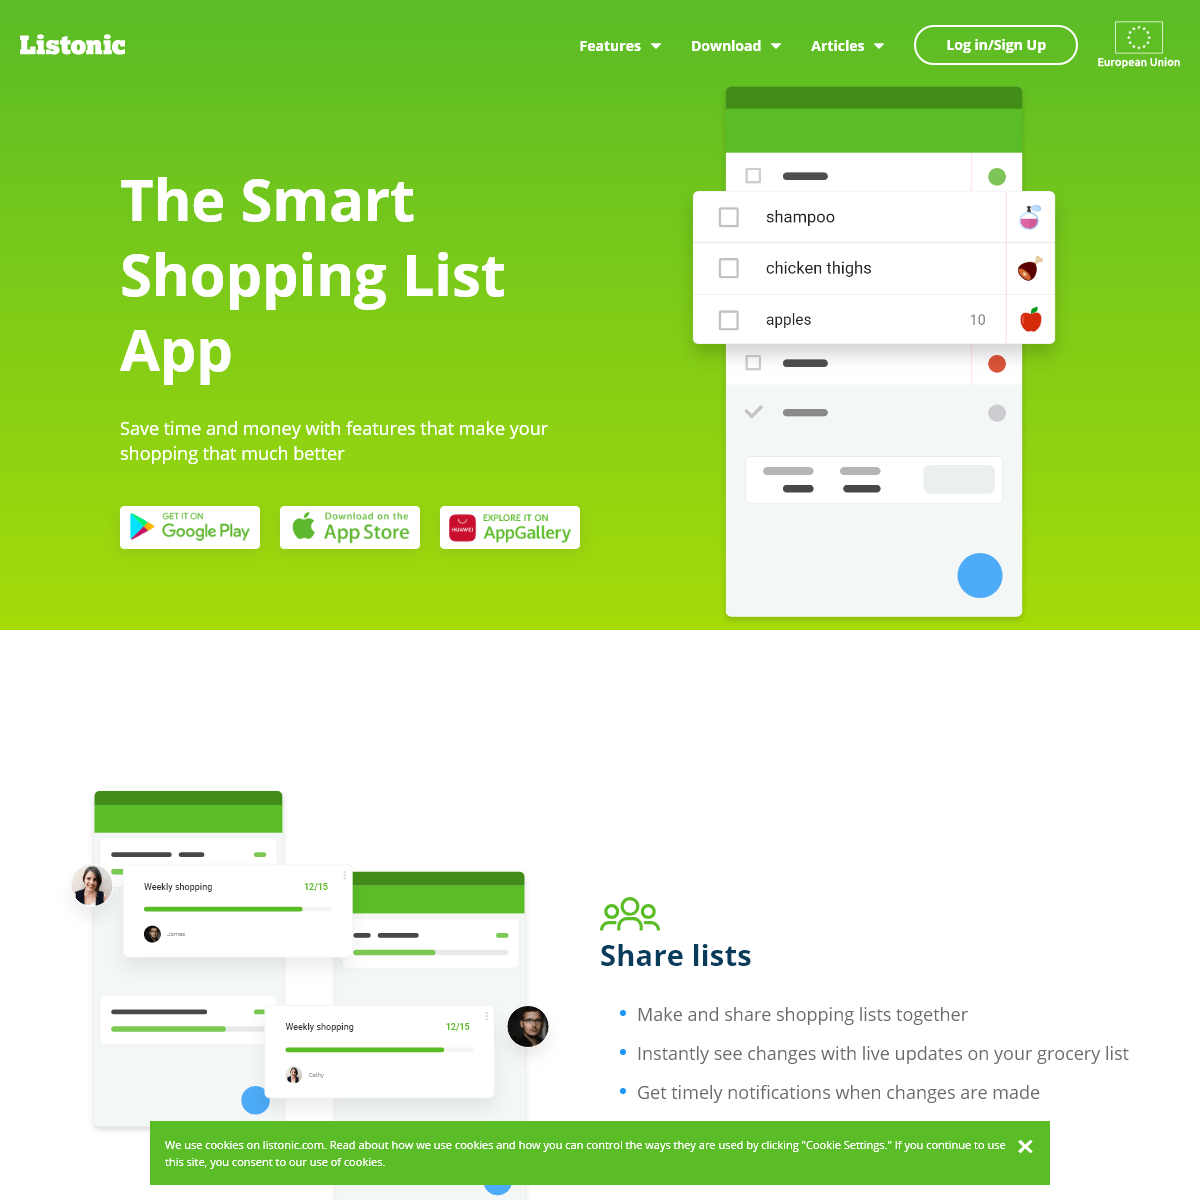 The Smart Shopping List App for Android, IOS, Online - Listonic